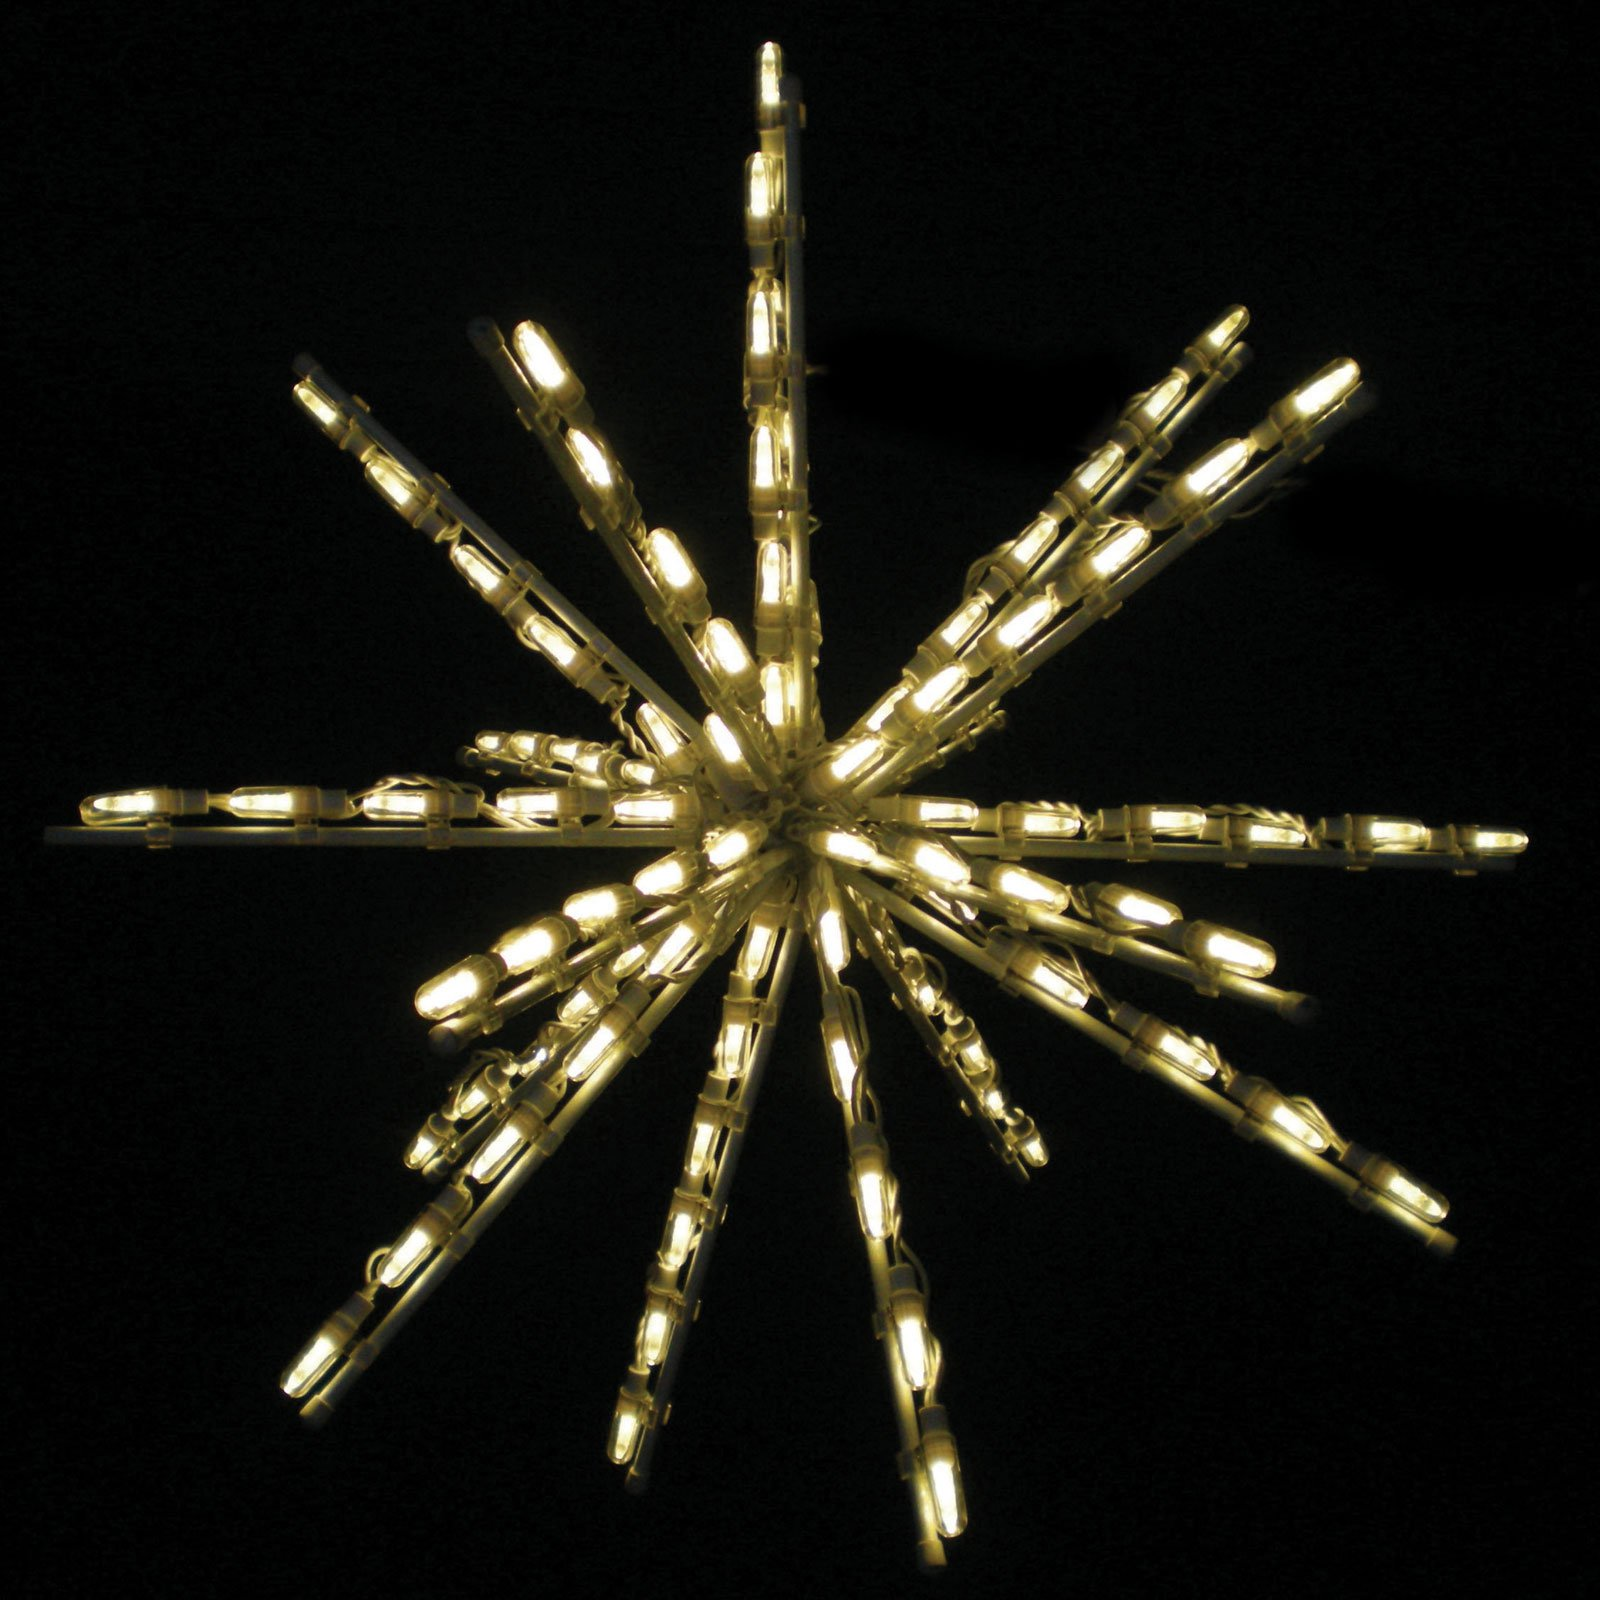 24-Inch Warm White One Color LED Starburst - 100 Bulbs - Set of 3